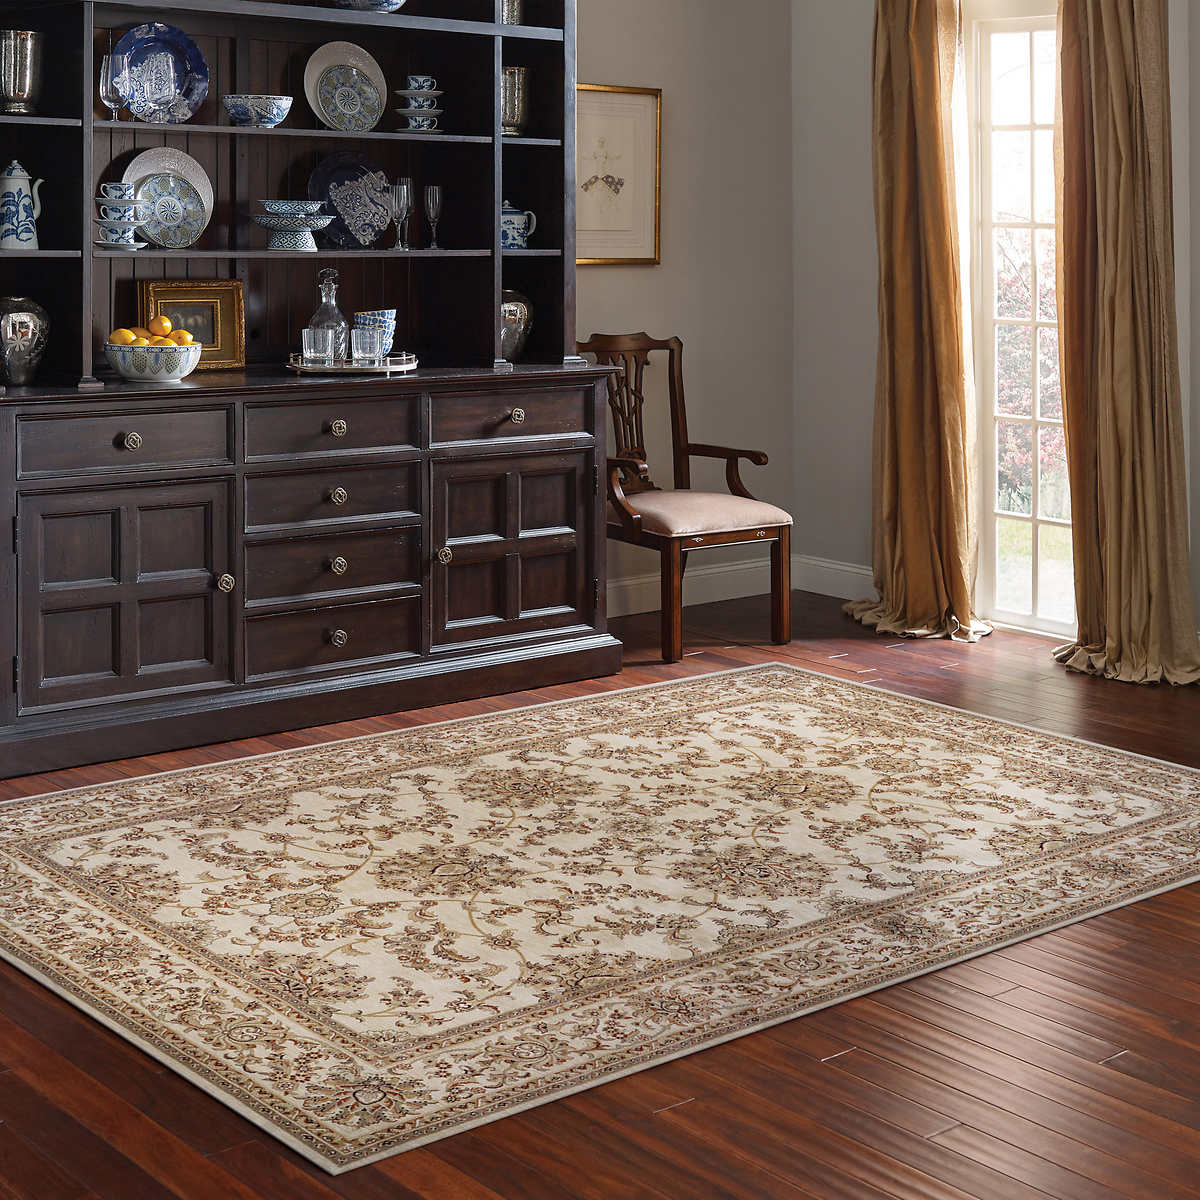 Thomasville Timeless Classic Rug Collection - Coventry Ivory - Thomasville Rugs Costco